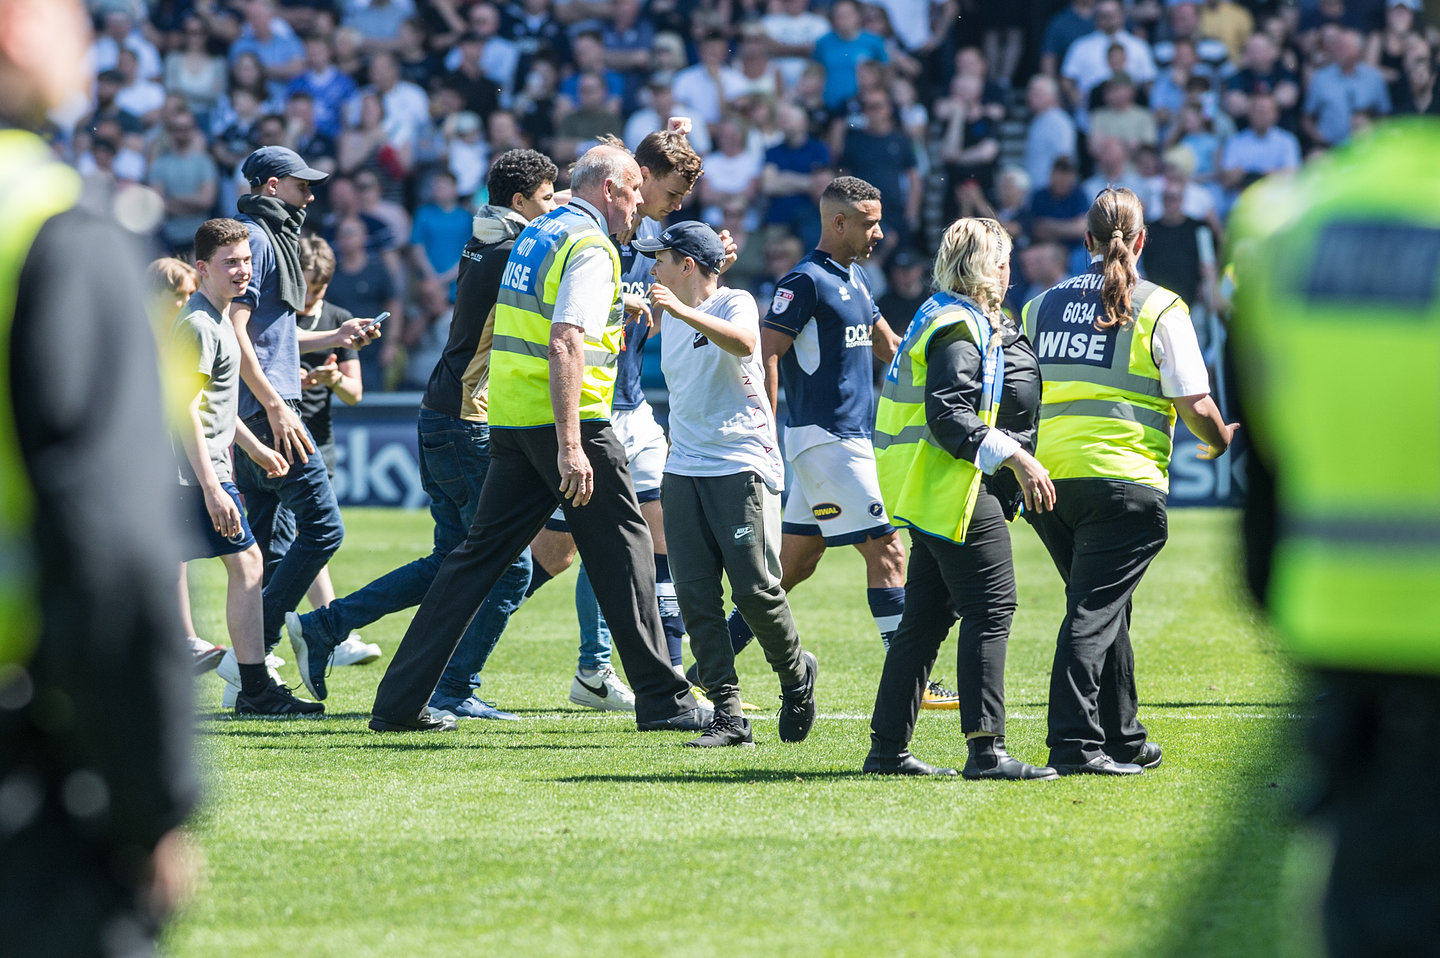 Millwall Vs Aston Villa 6 May 2018